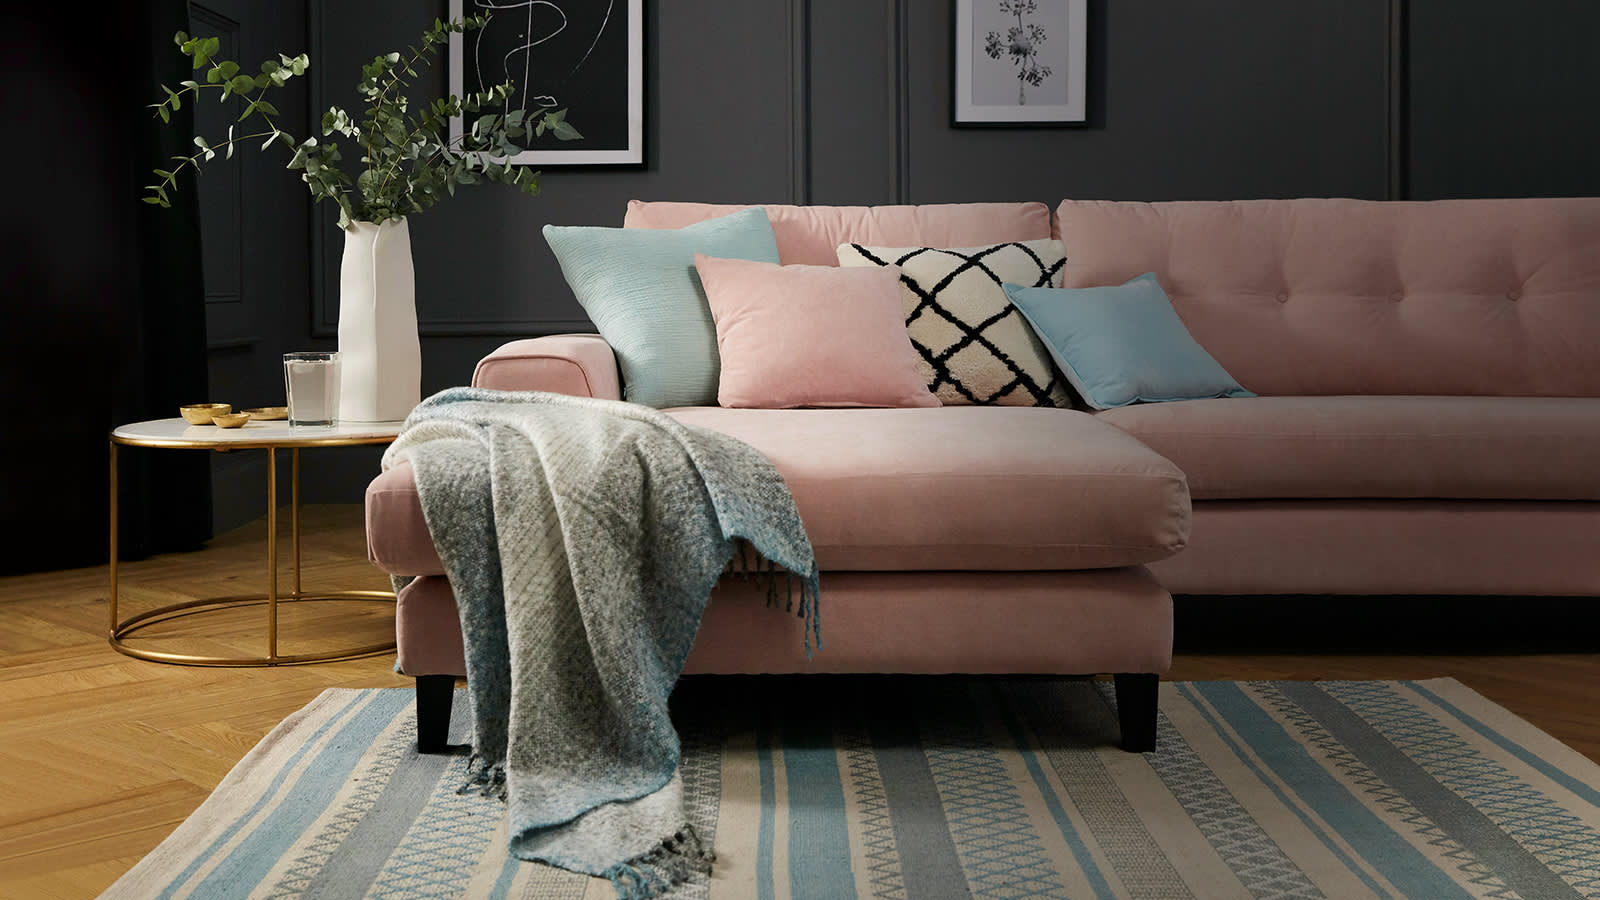 Light pink Demure chaise sofa with light blue throw and scatter cushions